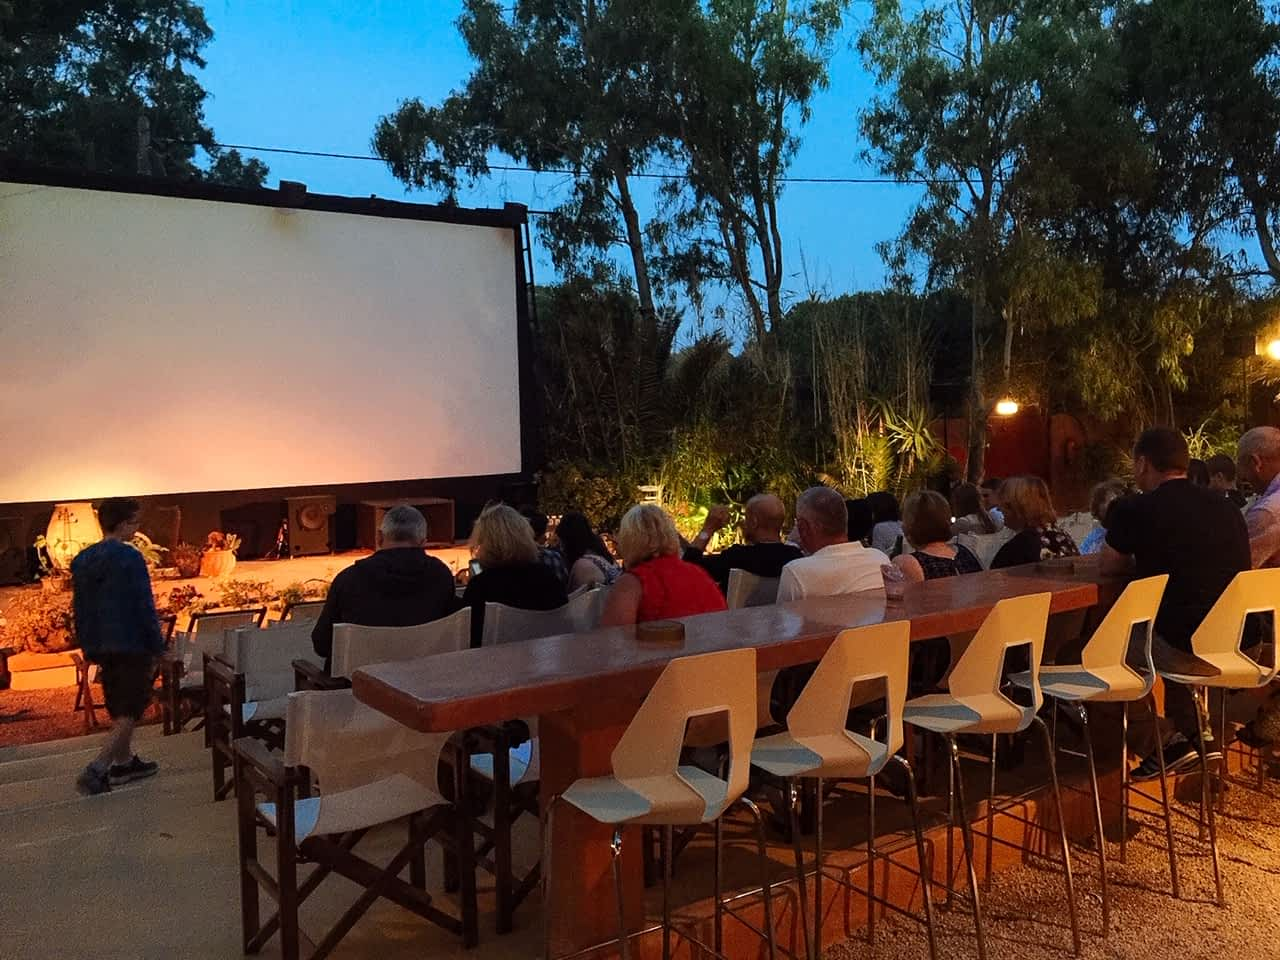 Reasons to visit Santorini - Outdoor Cinema